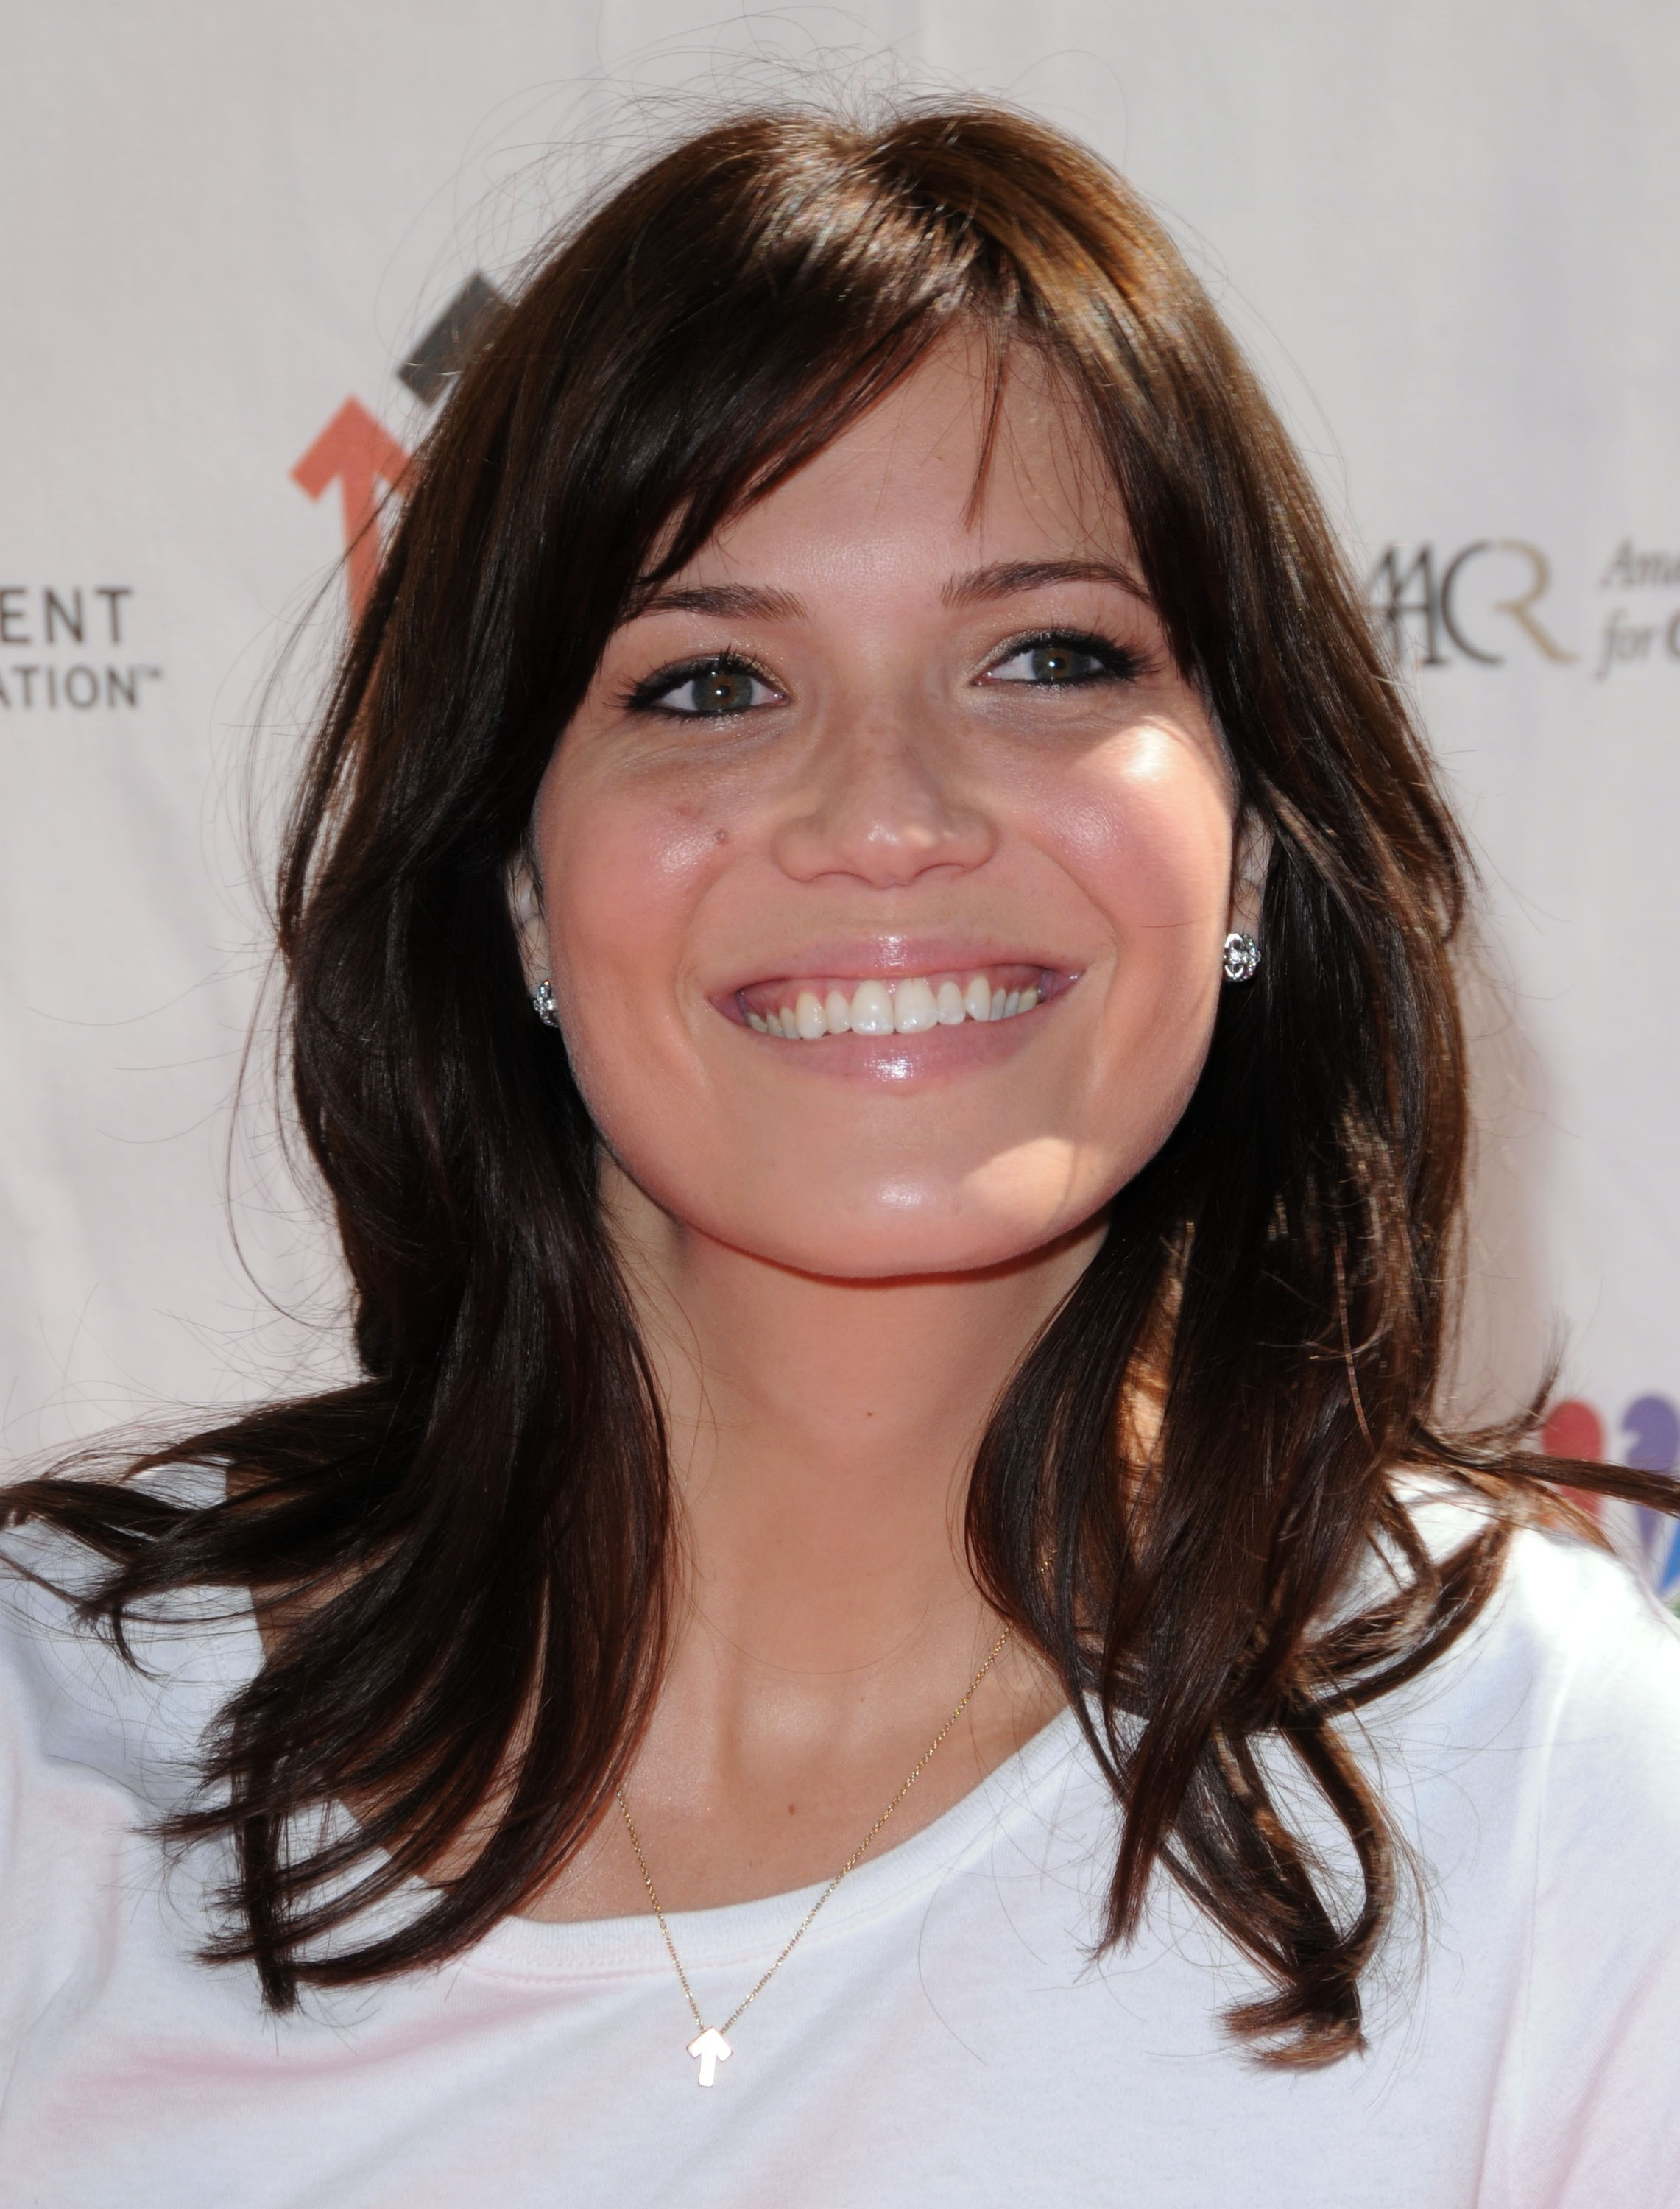 faces mandy moore singers HD Wallpaper